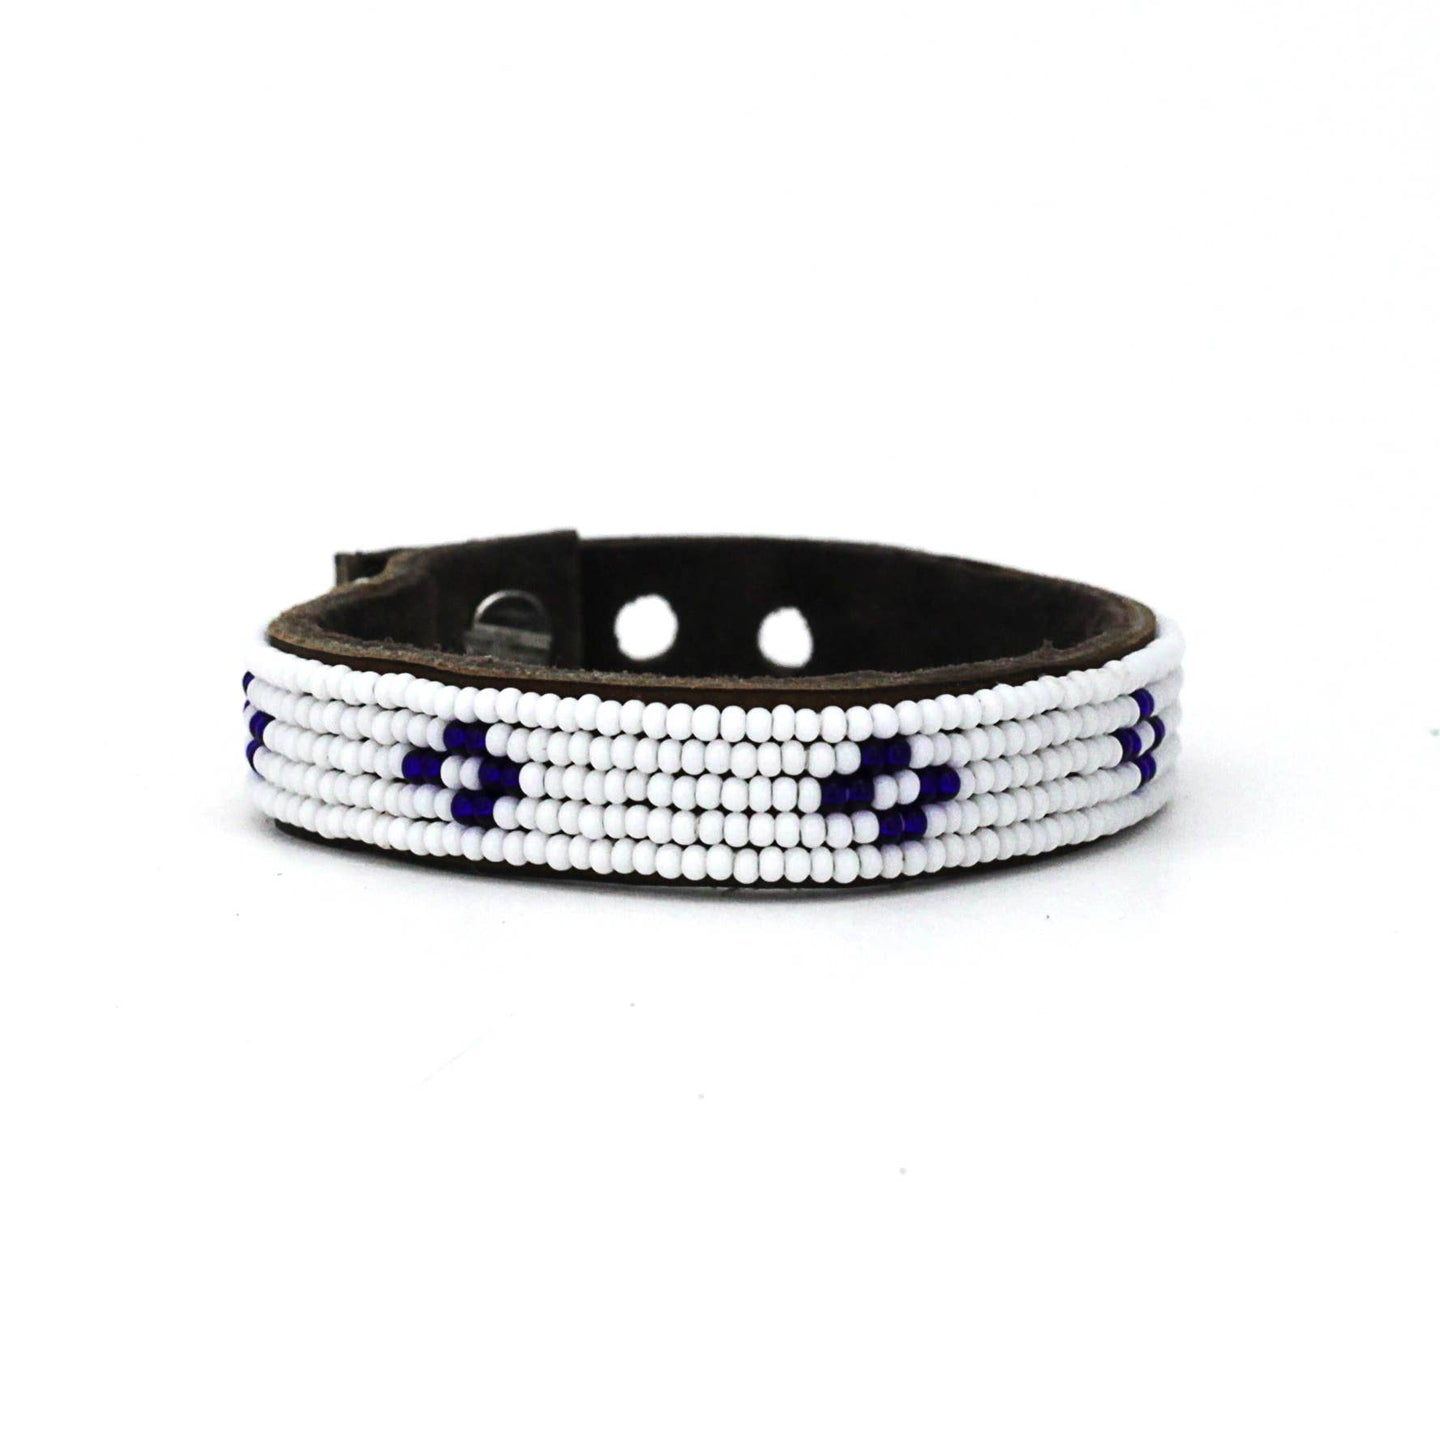 Swahili Coast - Small Dark Blue Diamond Leather Cuff